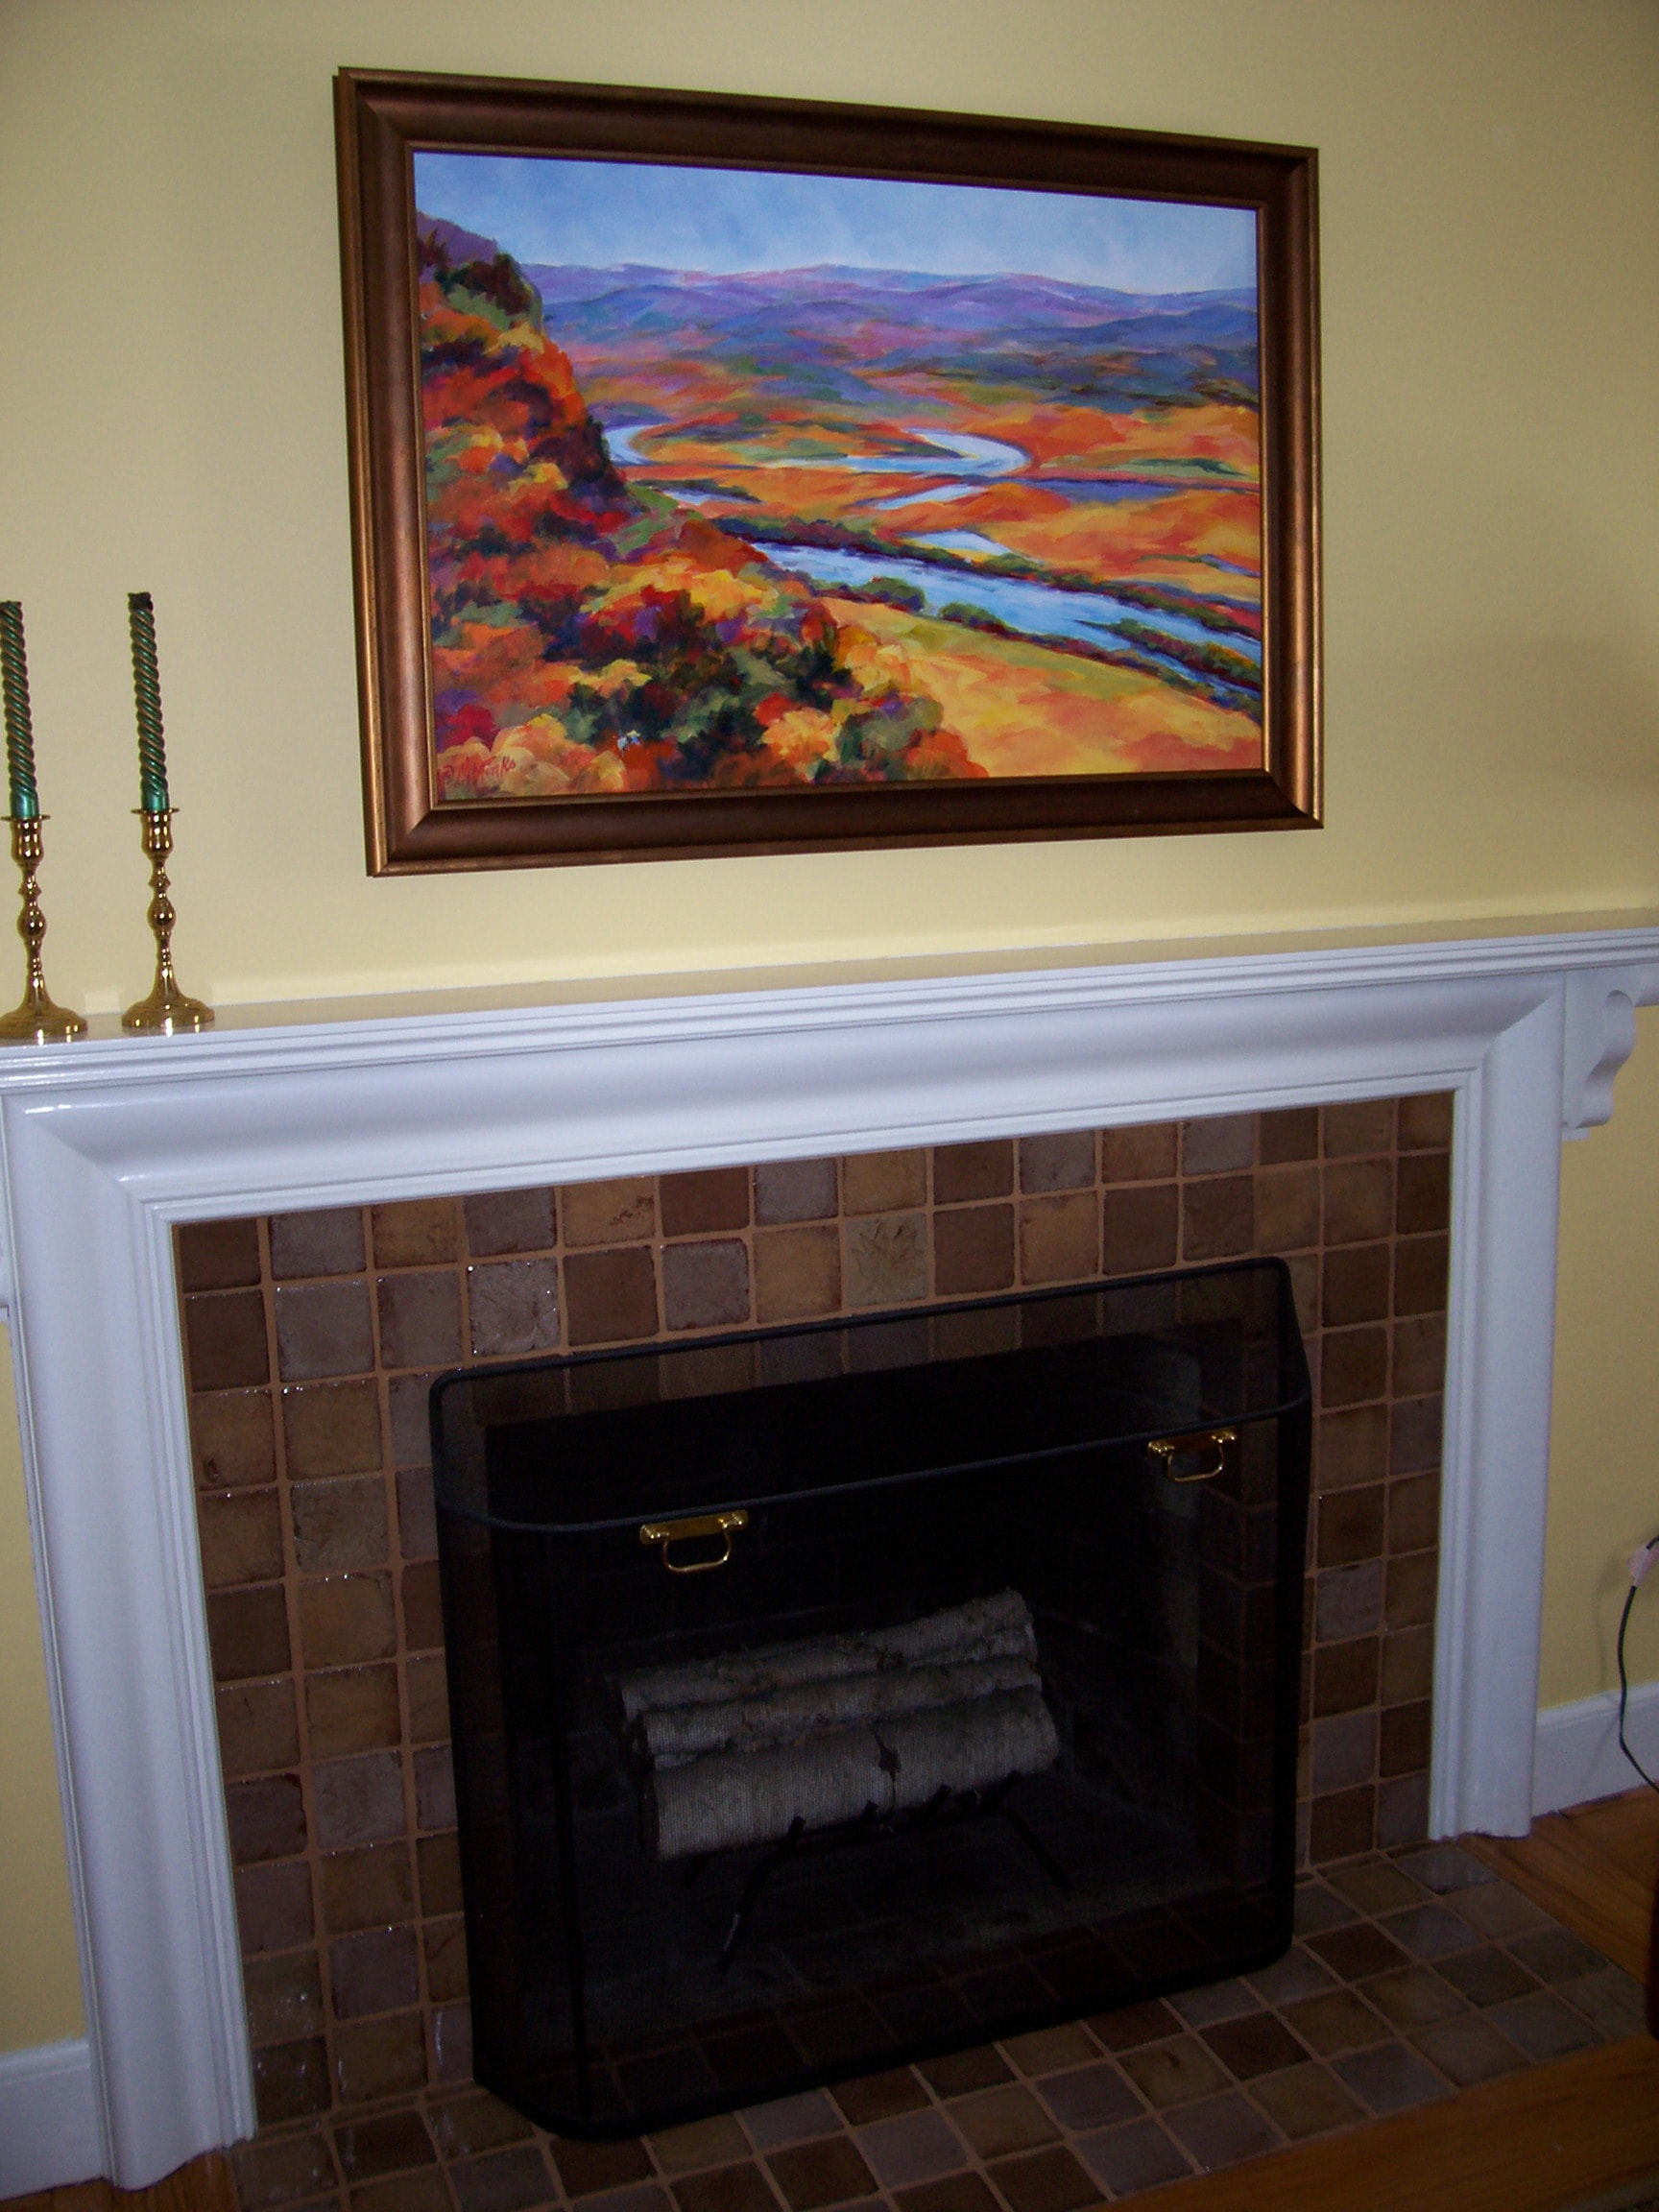 A painting of an aerial view of a river winding through a hilly autumn landscape above a fireplace